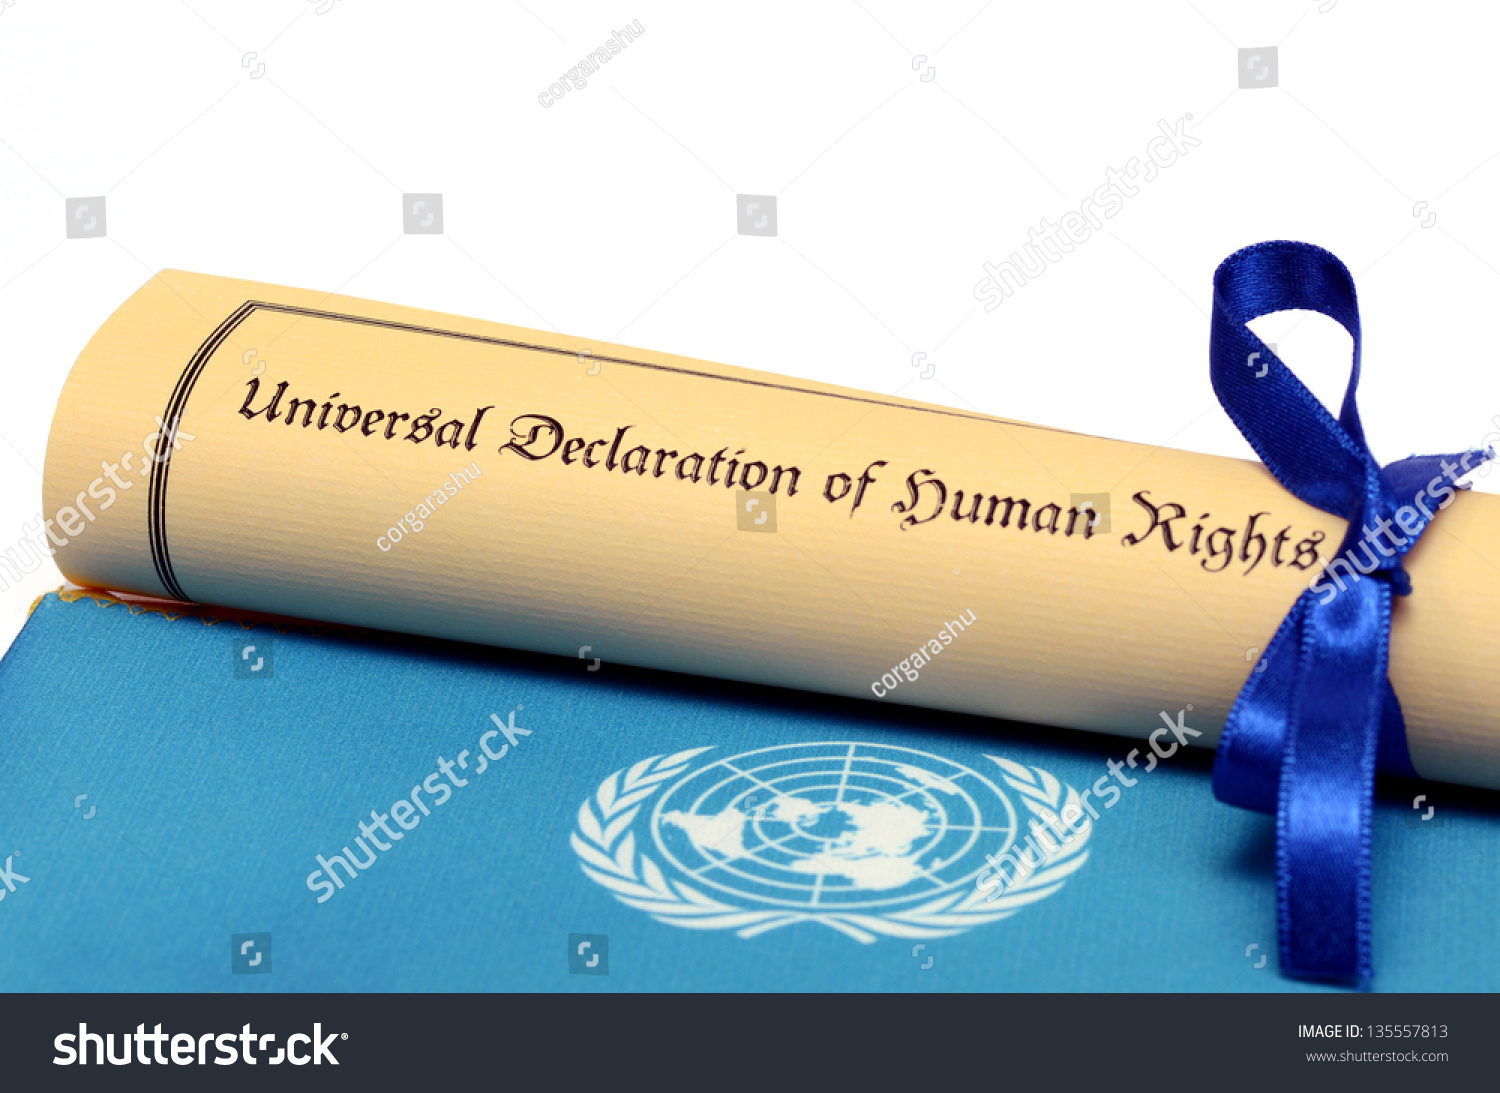 universal declaration human rights stock photo  universal declaration human rights stock photo 135557813 shutterstock